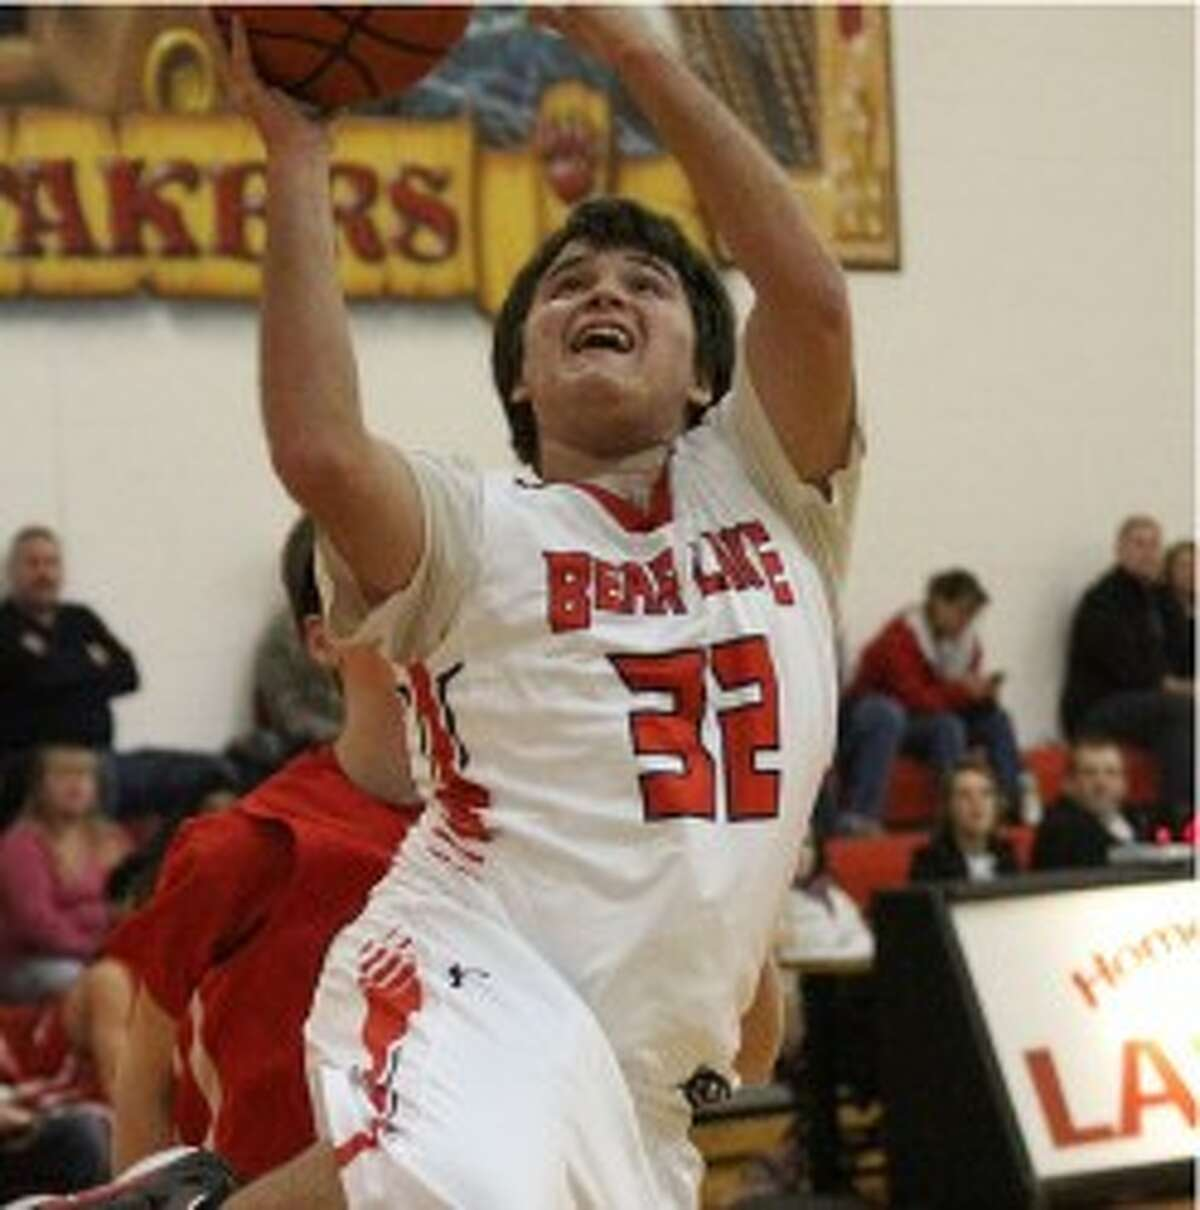 Bear Lake's Josh Santa elevates for a shot during a win against Crossroads on Thursday. (Dylan Savela/News Advocate)